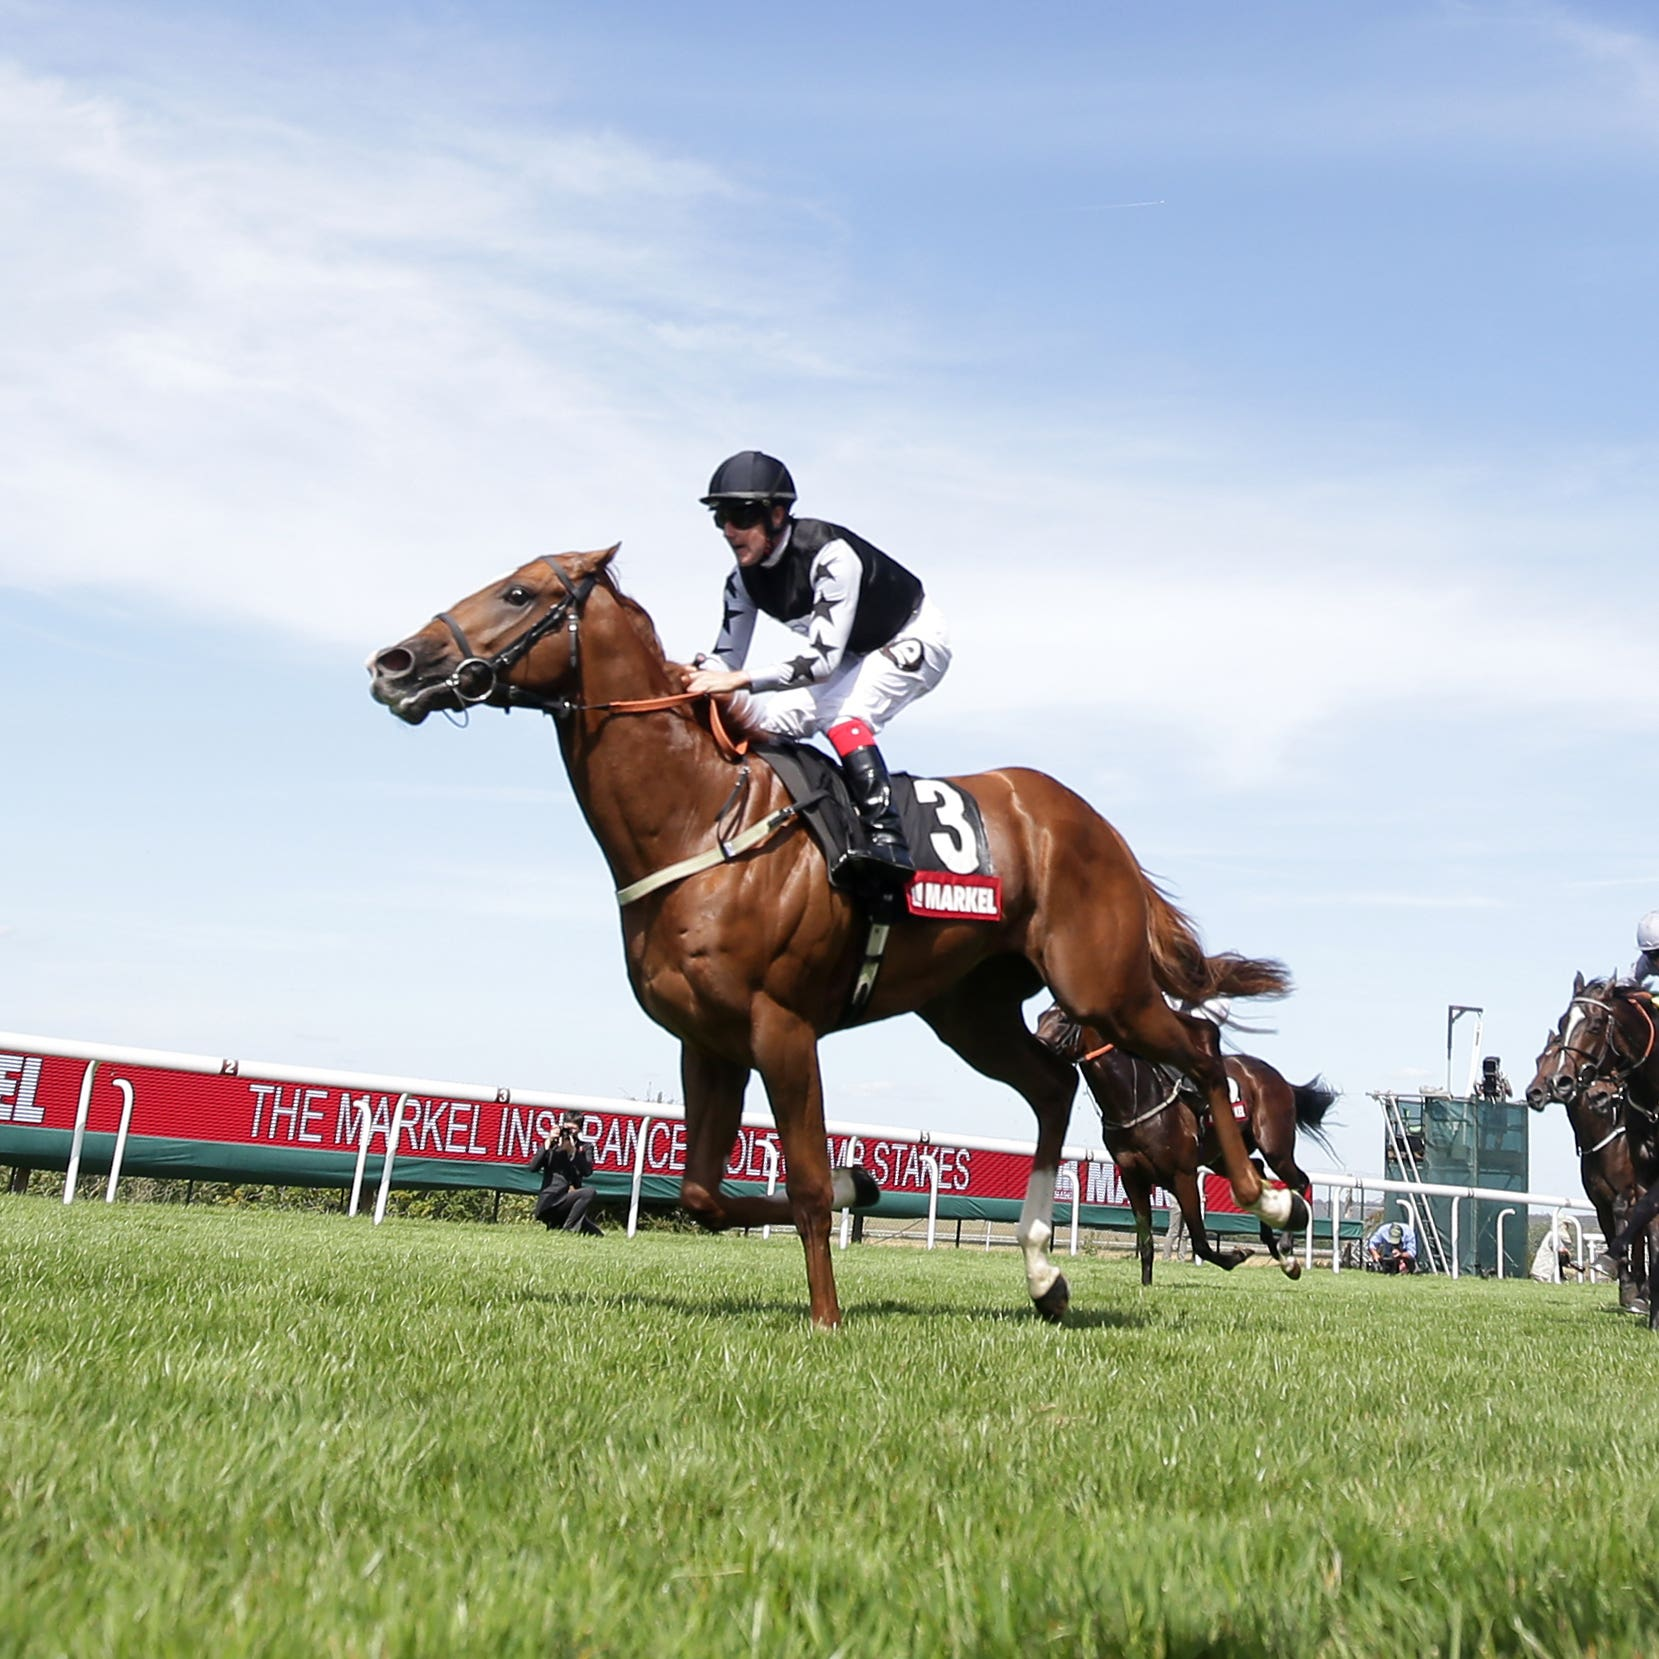 Rumble Inthejungle on his way to winning at Glorious Goodwood